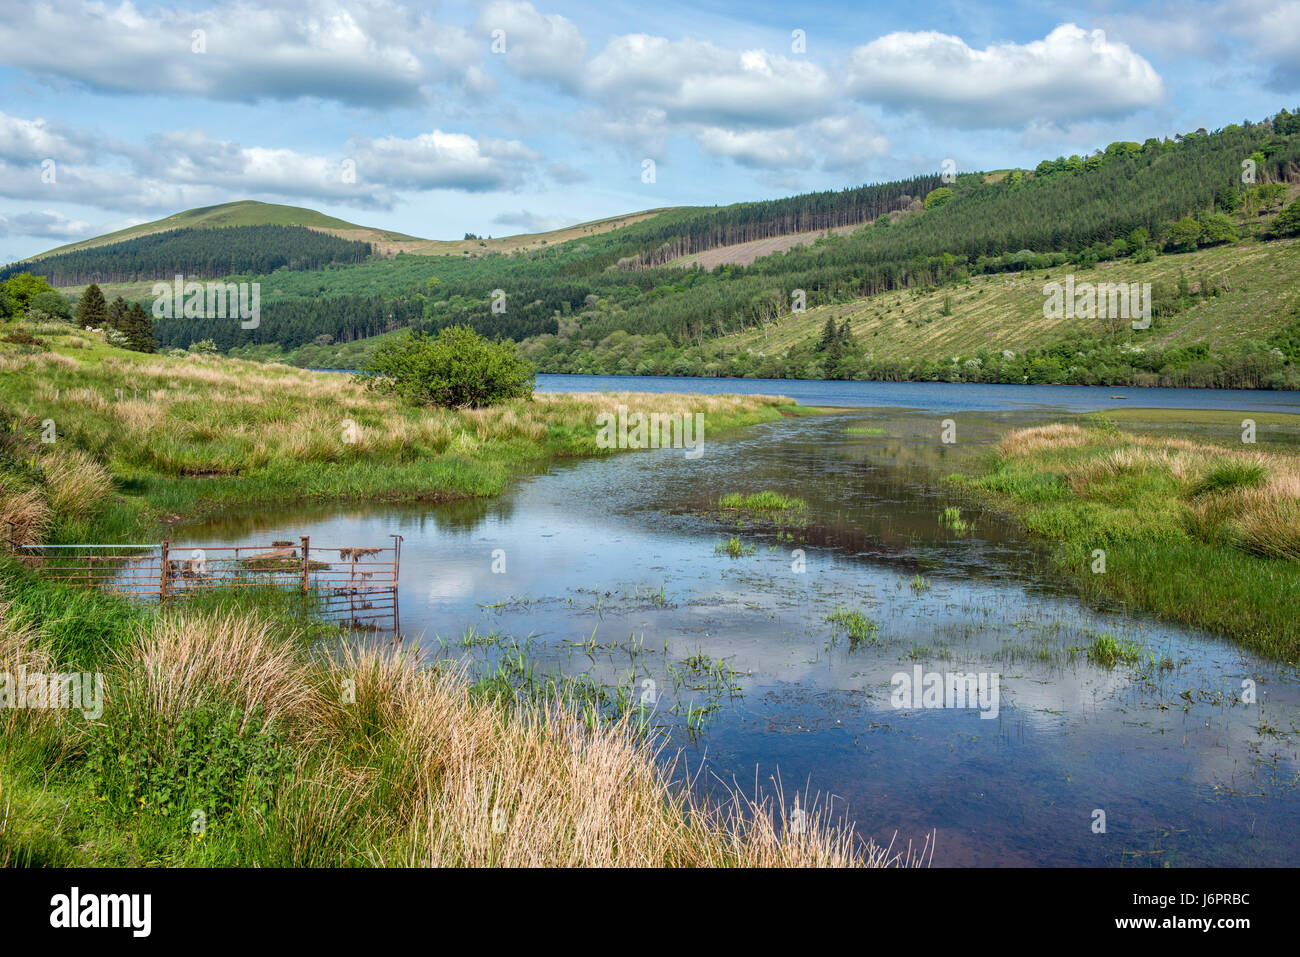 Forest and hills in the Brecon Beacons National Park Wales - Stock Image